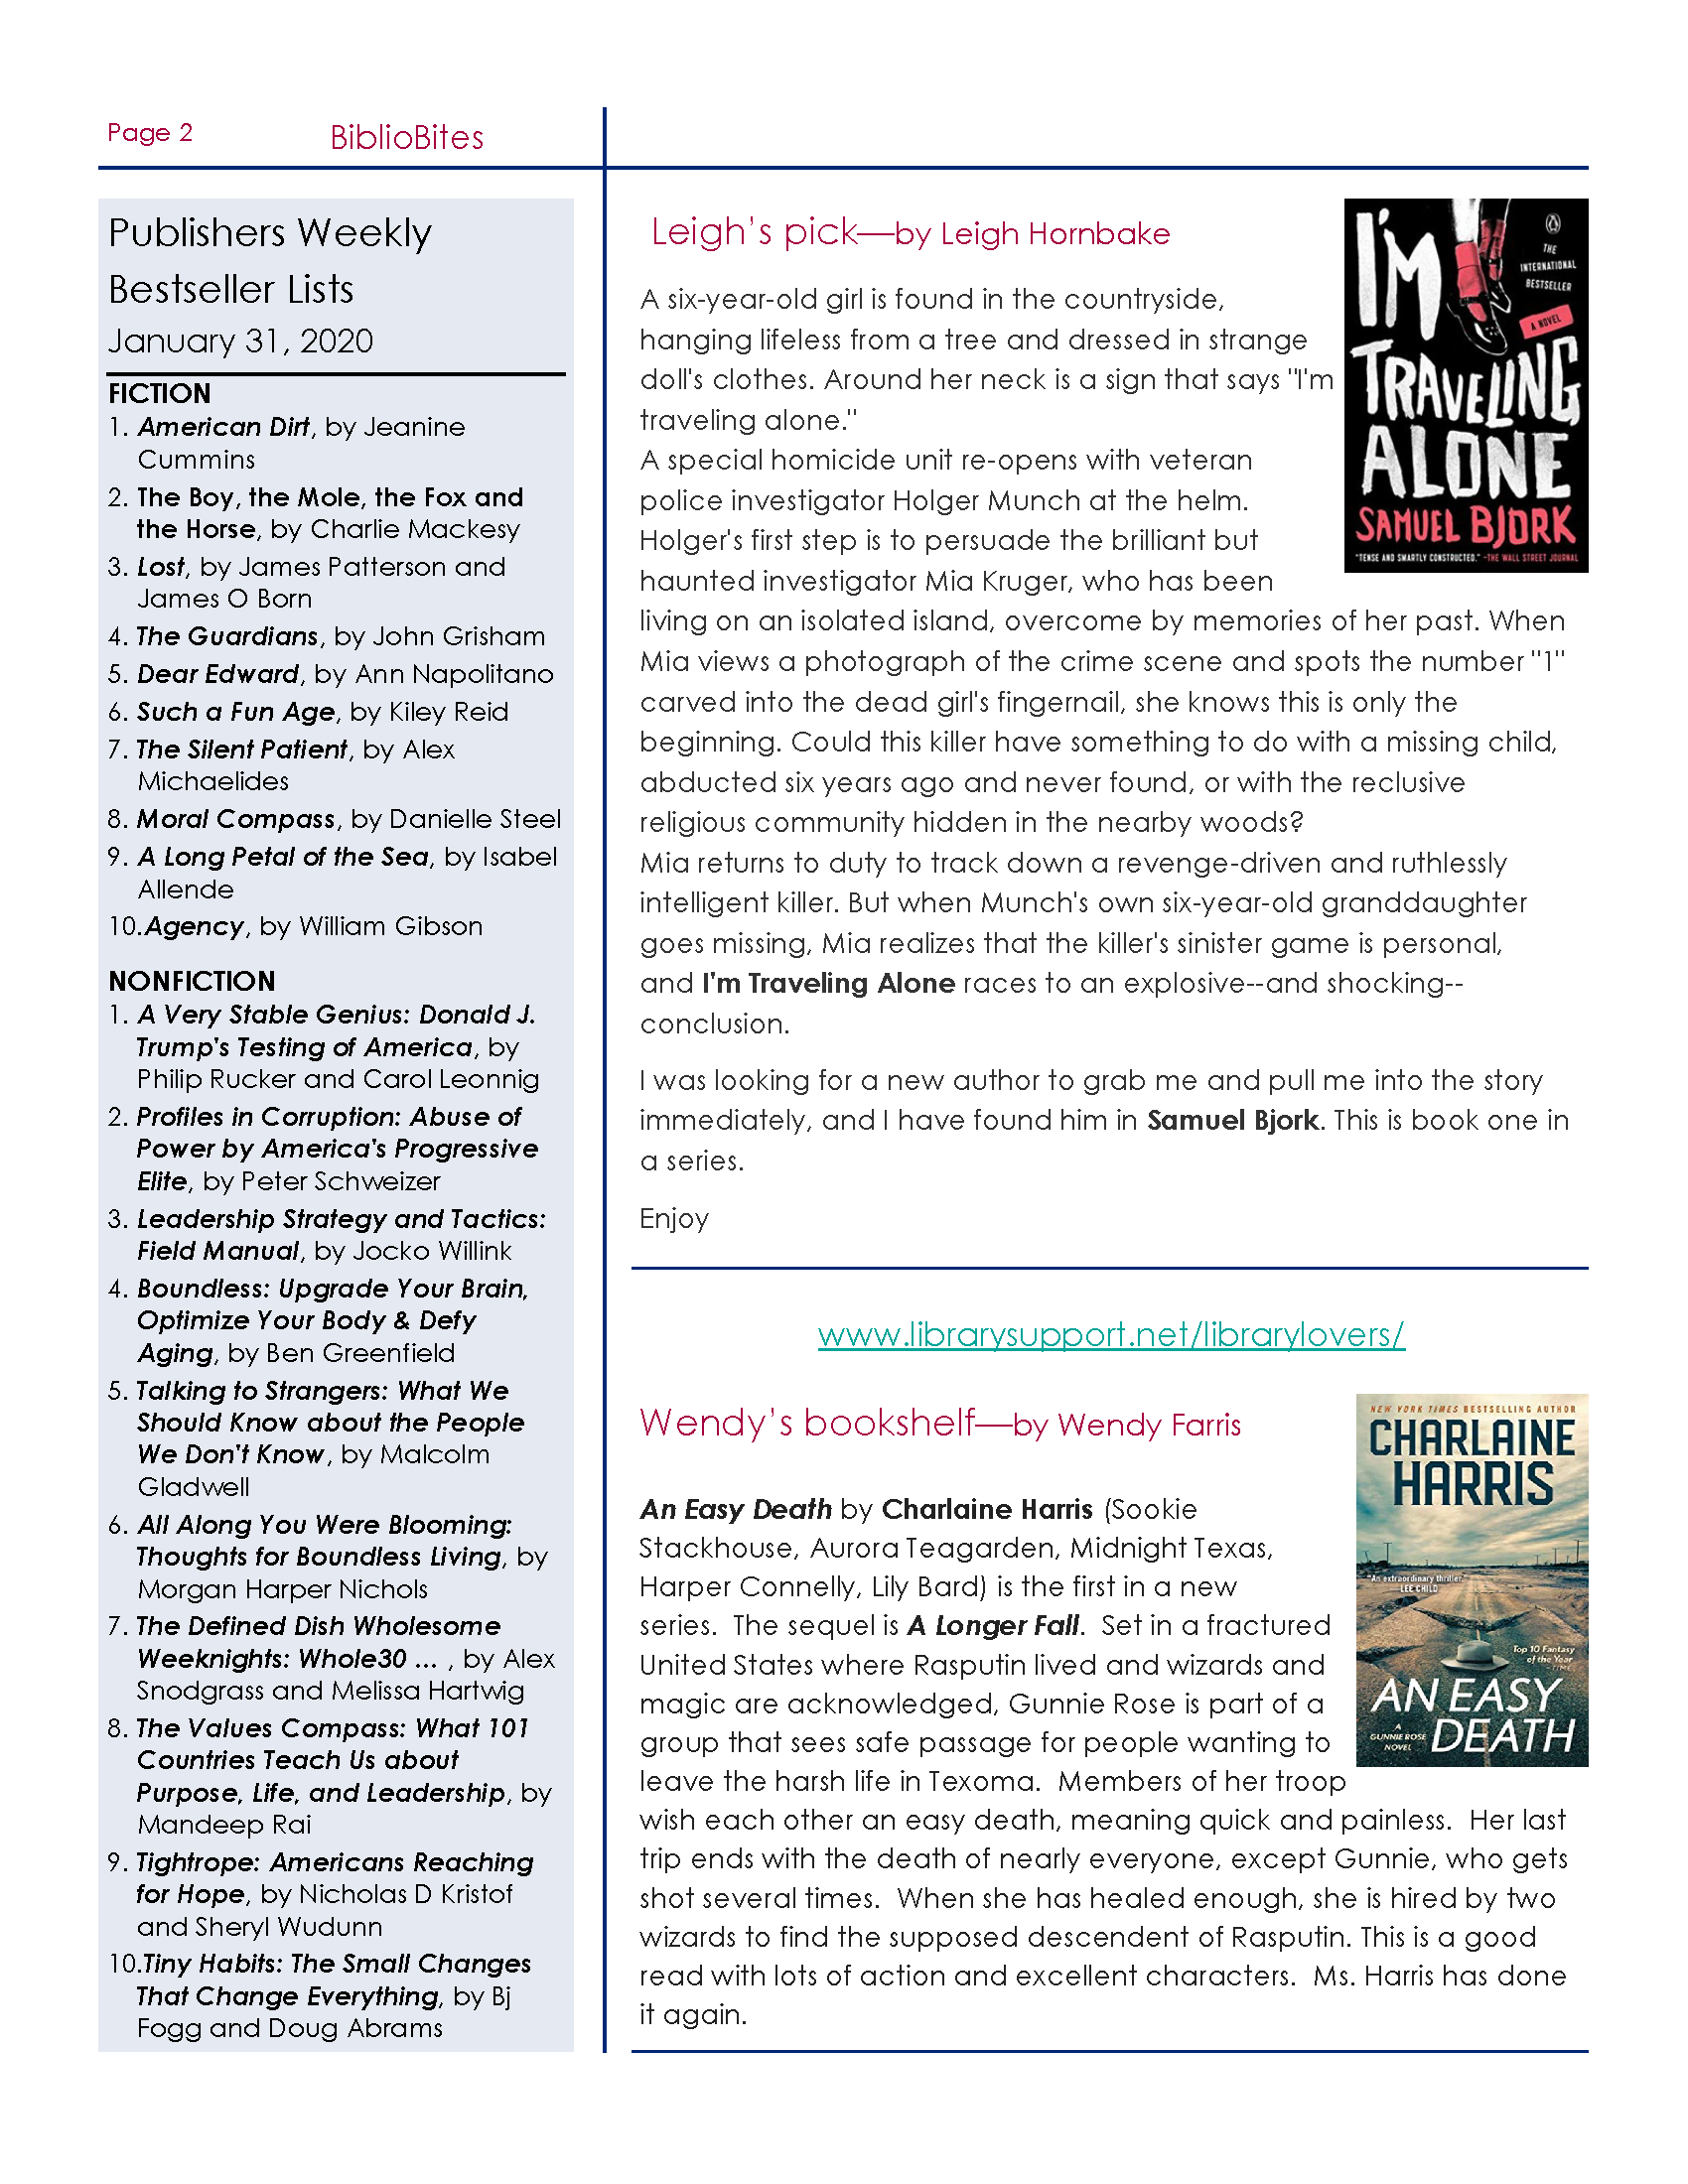 DeSoto County Library 2-20 Newsletter